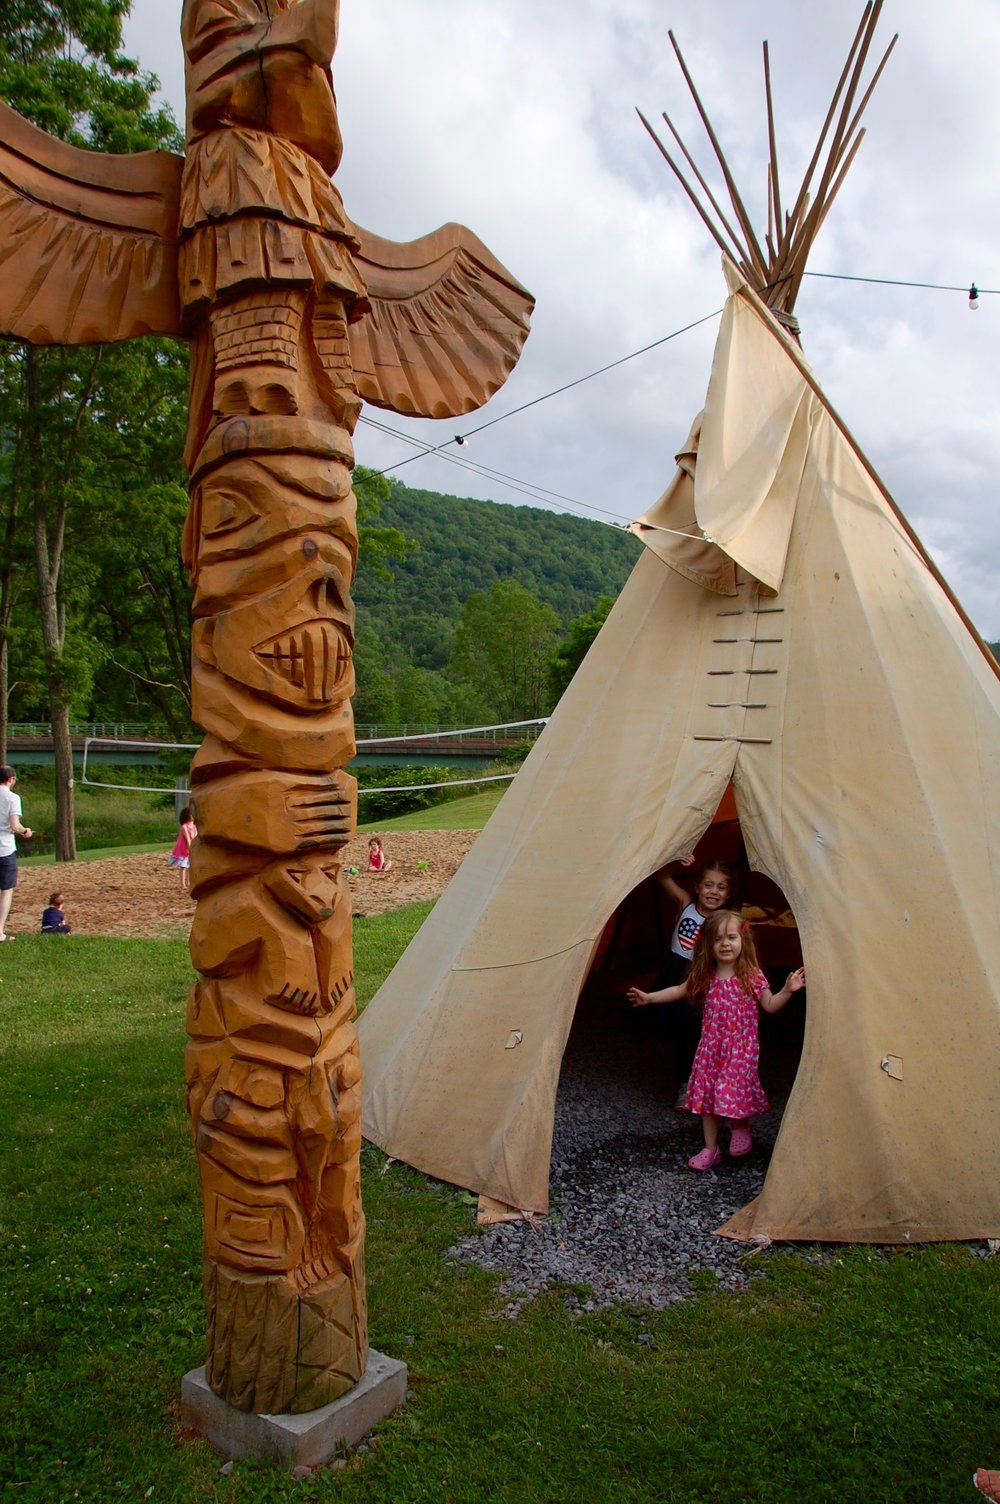 Giant, kid-friendly teepee in the backyard of Windham's Chicken Run